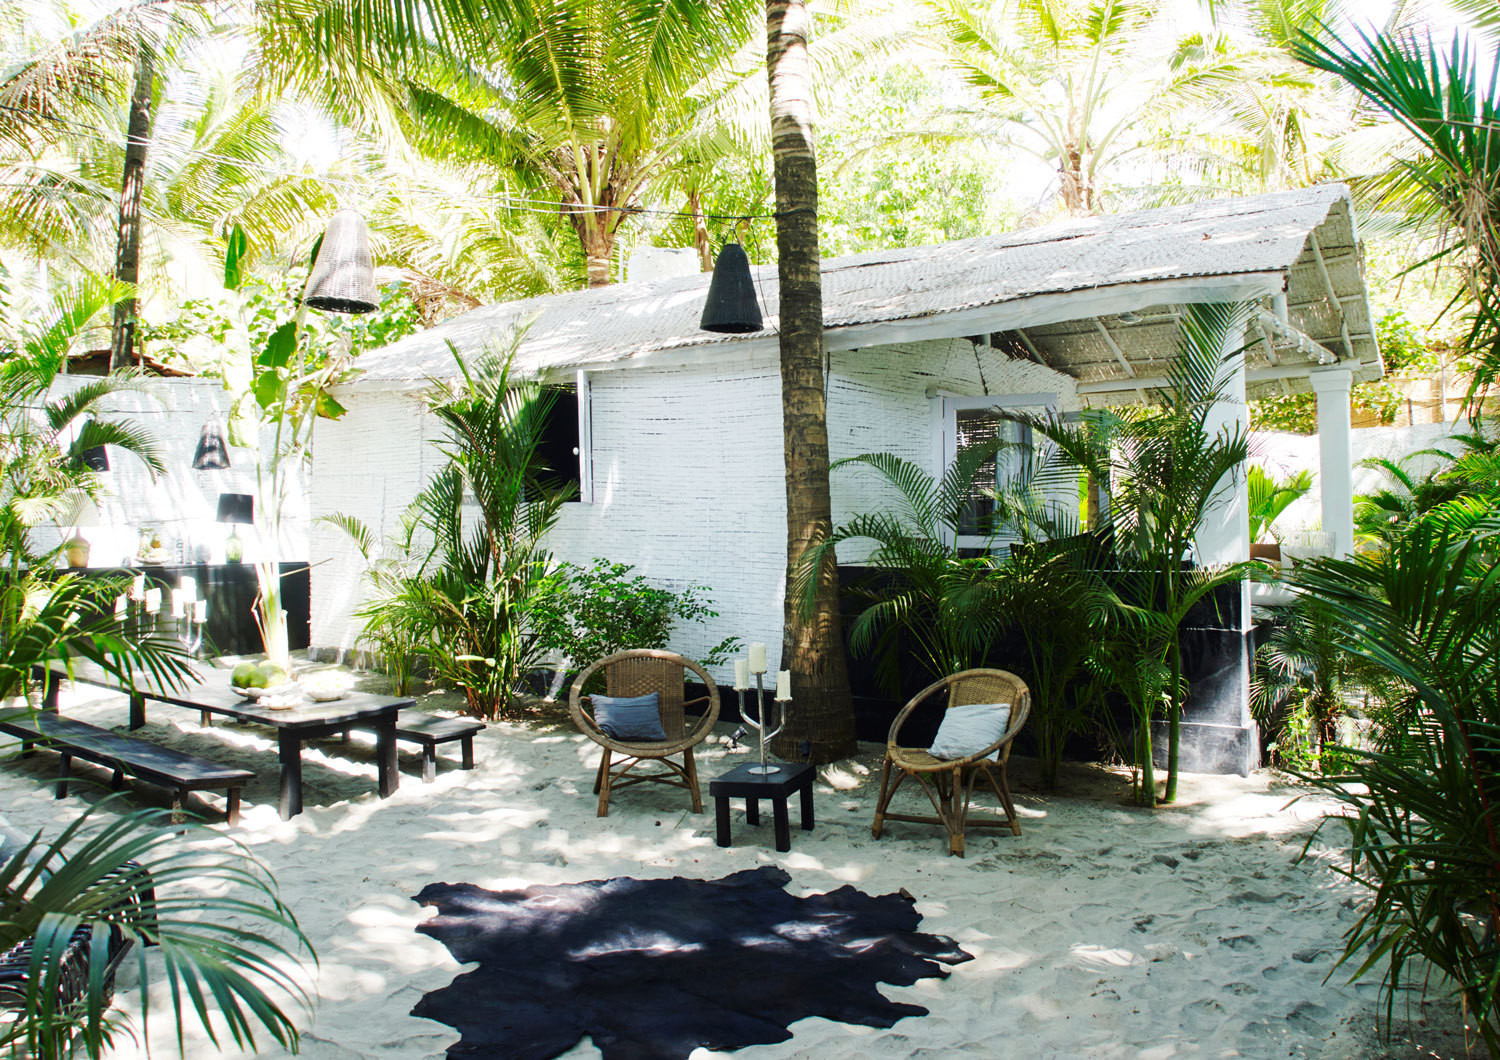 French fashion designer Laurence Doligé's bungalow in Goa, India.